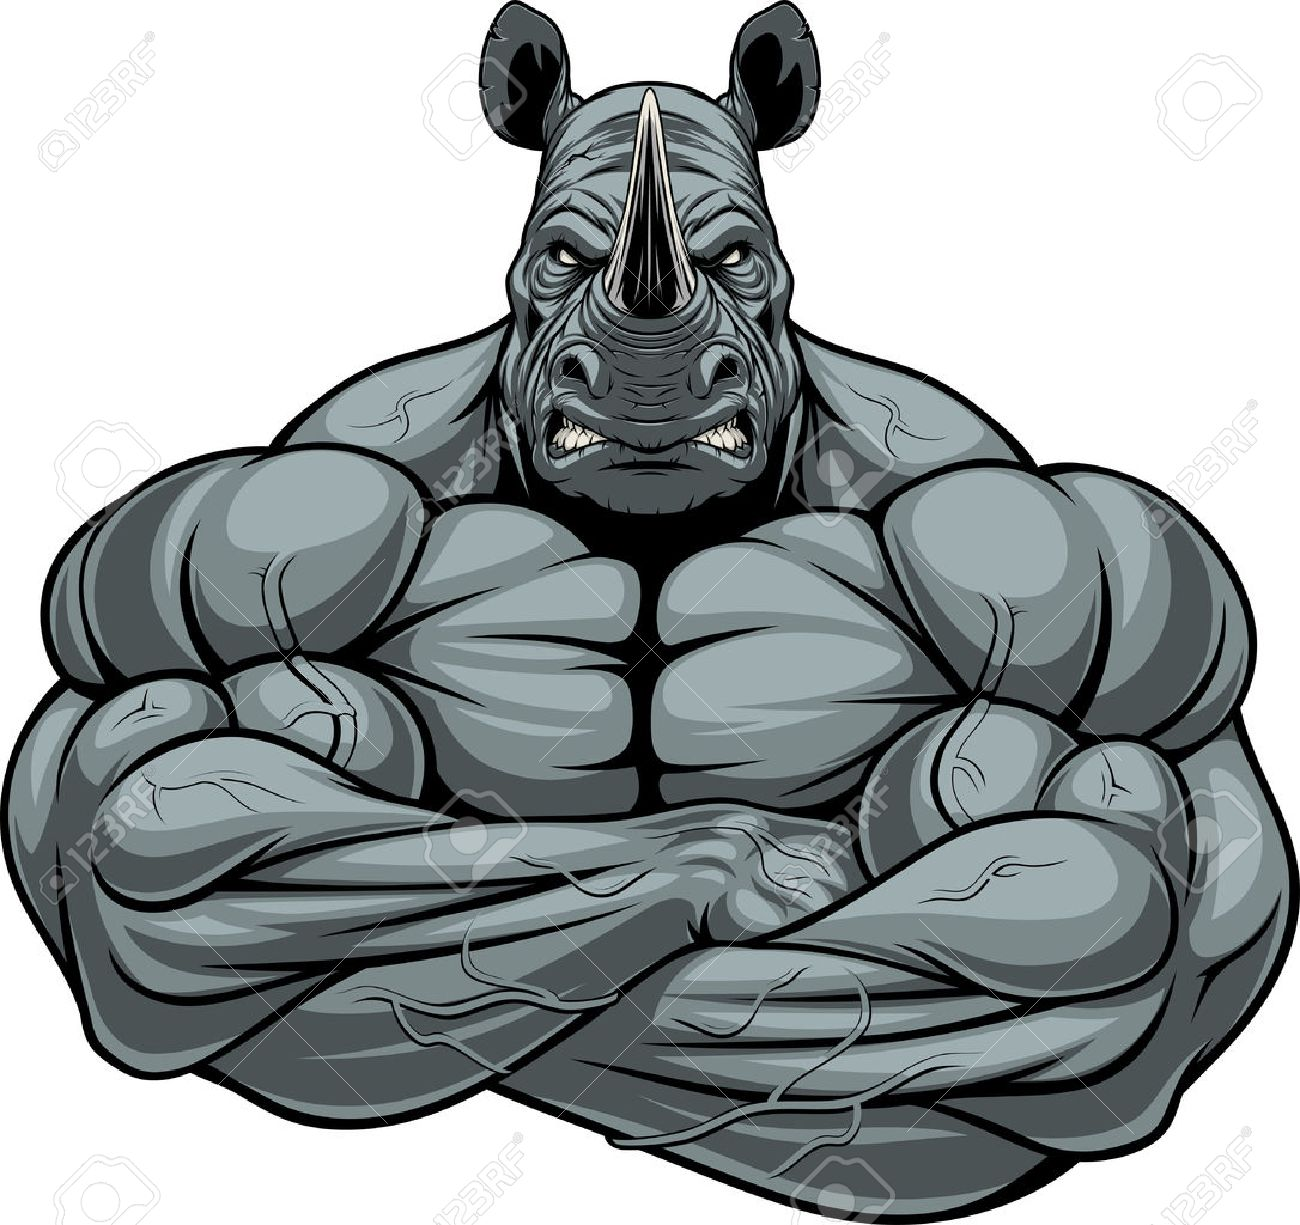 bodybuilder drawing at getdrawings com free for personal rhinocéros clipart rhinoceros clipart black and white